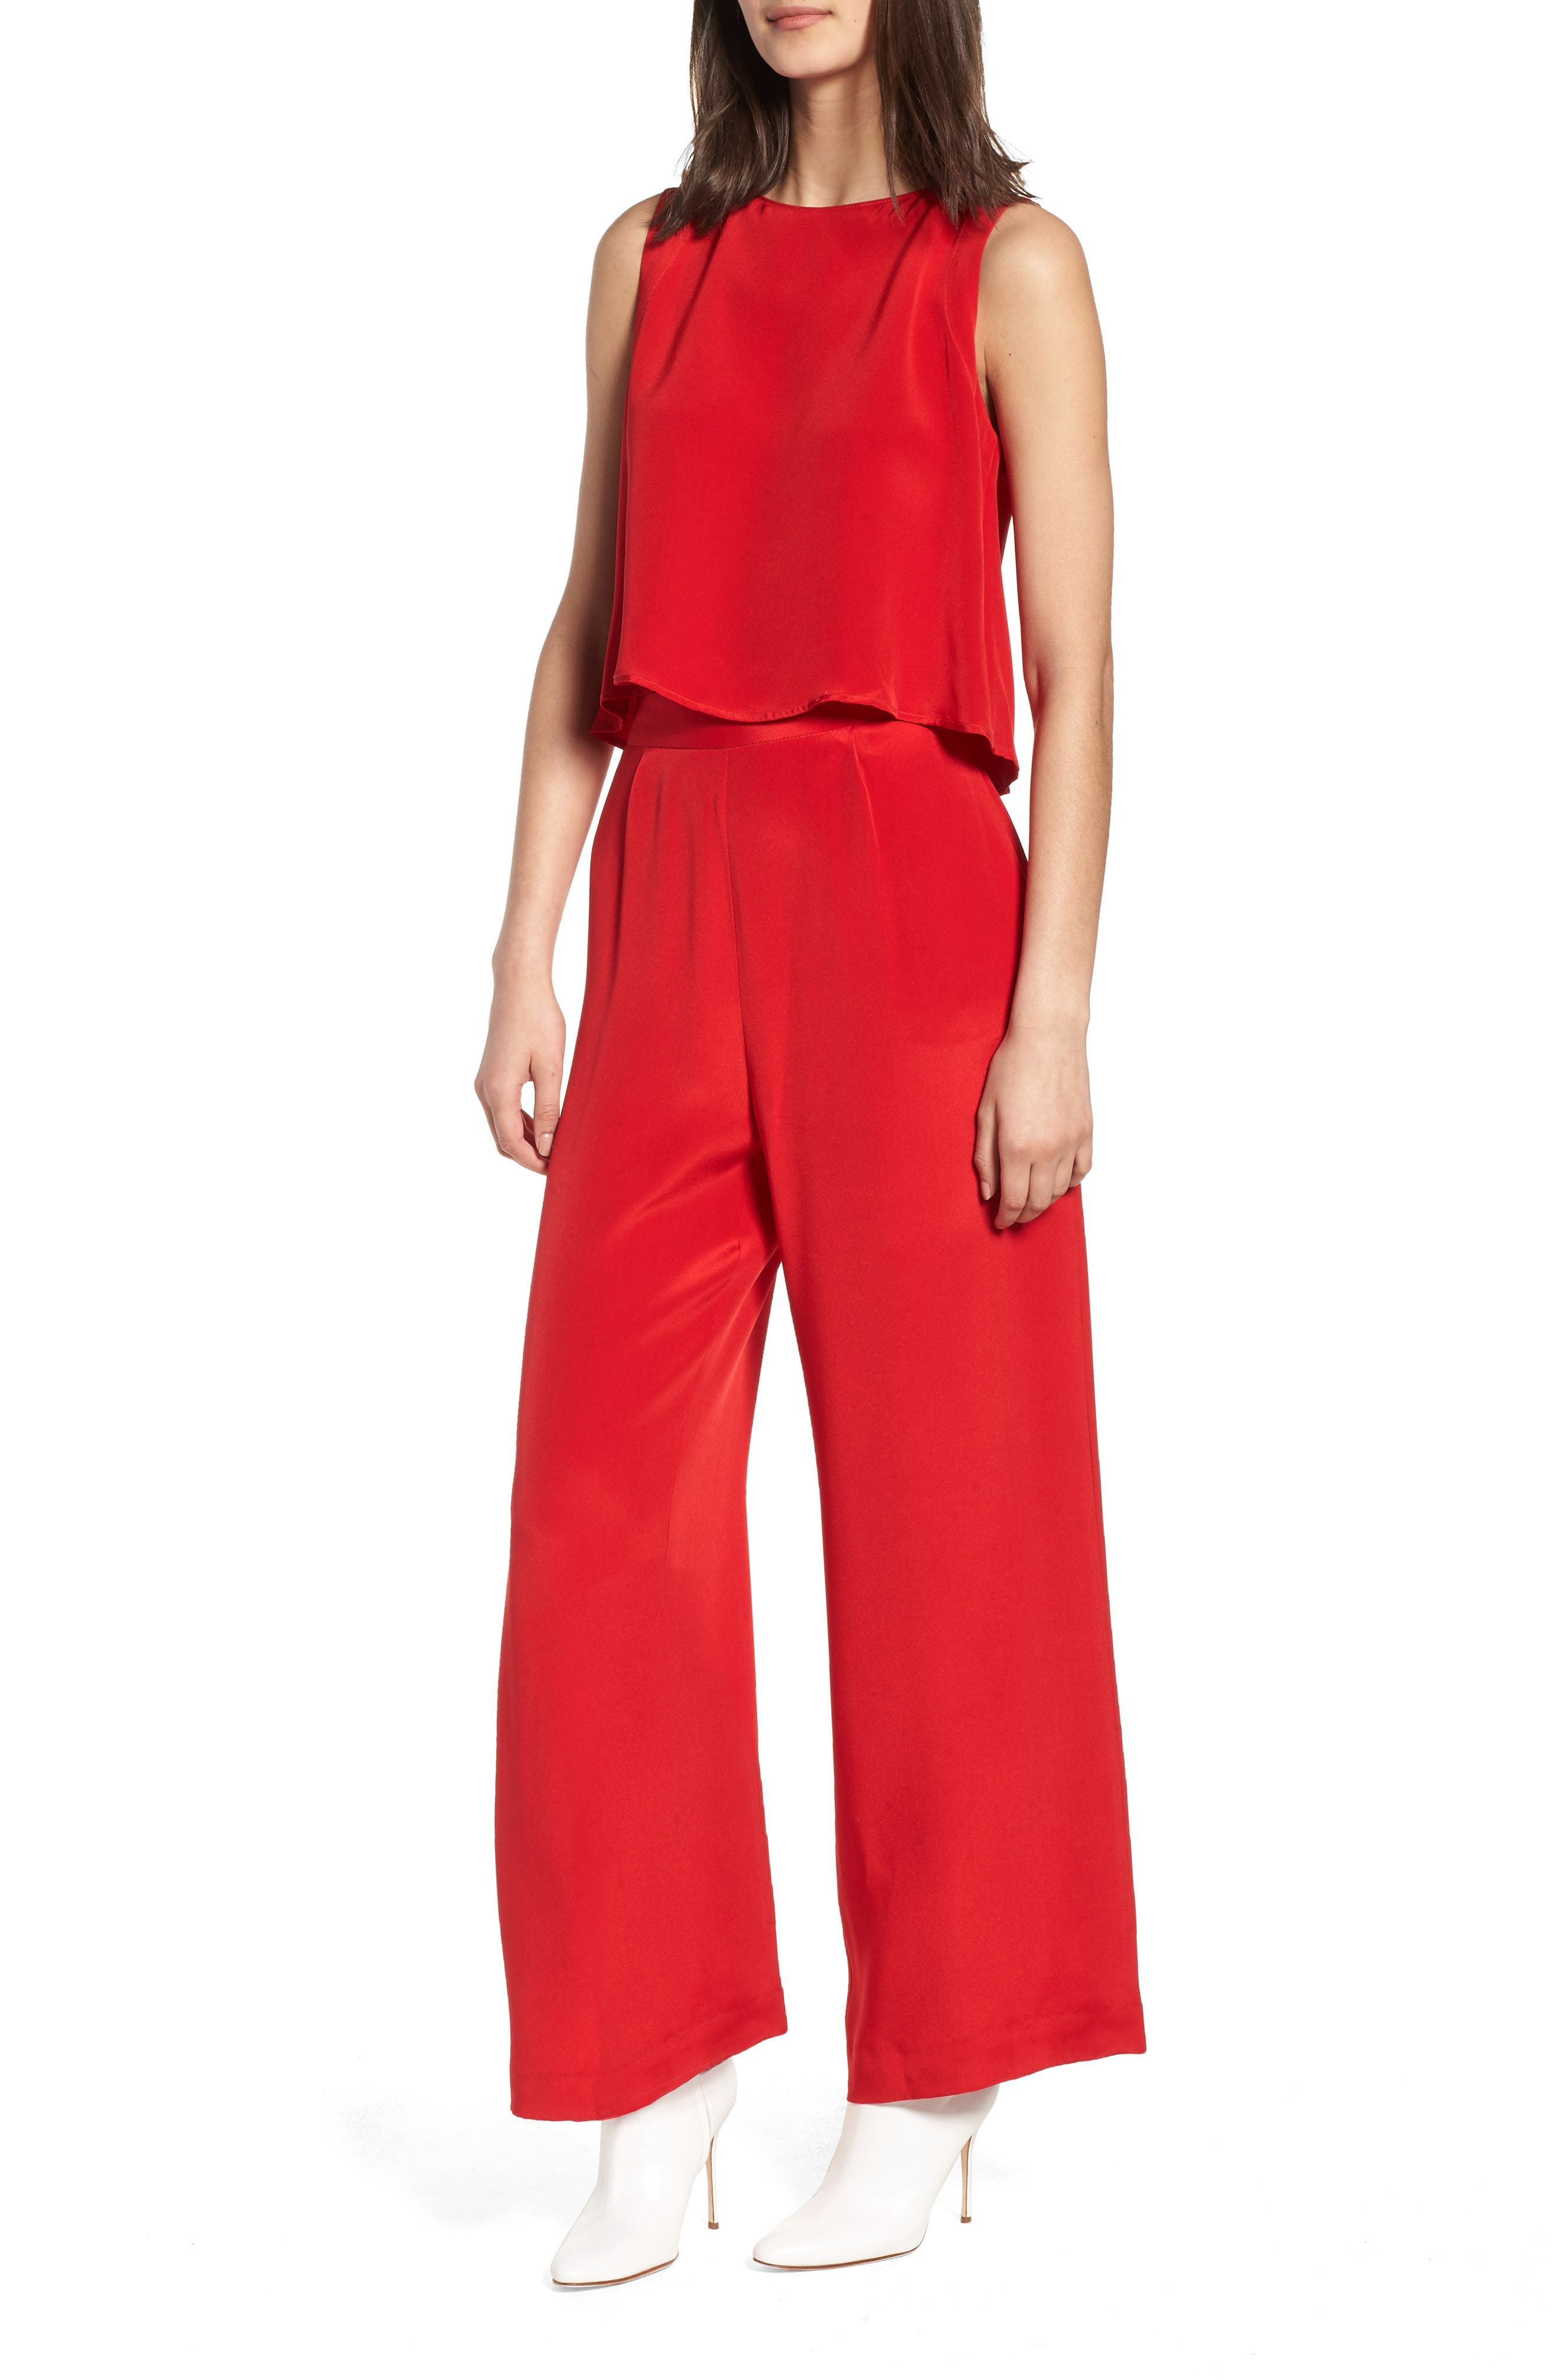 Urban Silky Top & Pants,                         Main,                         color, Red